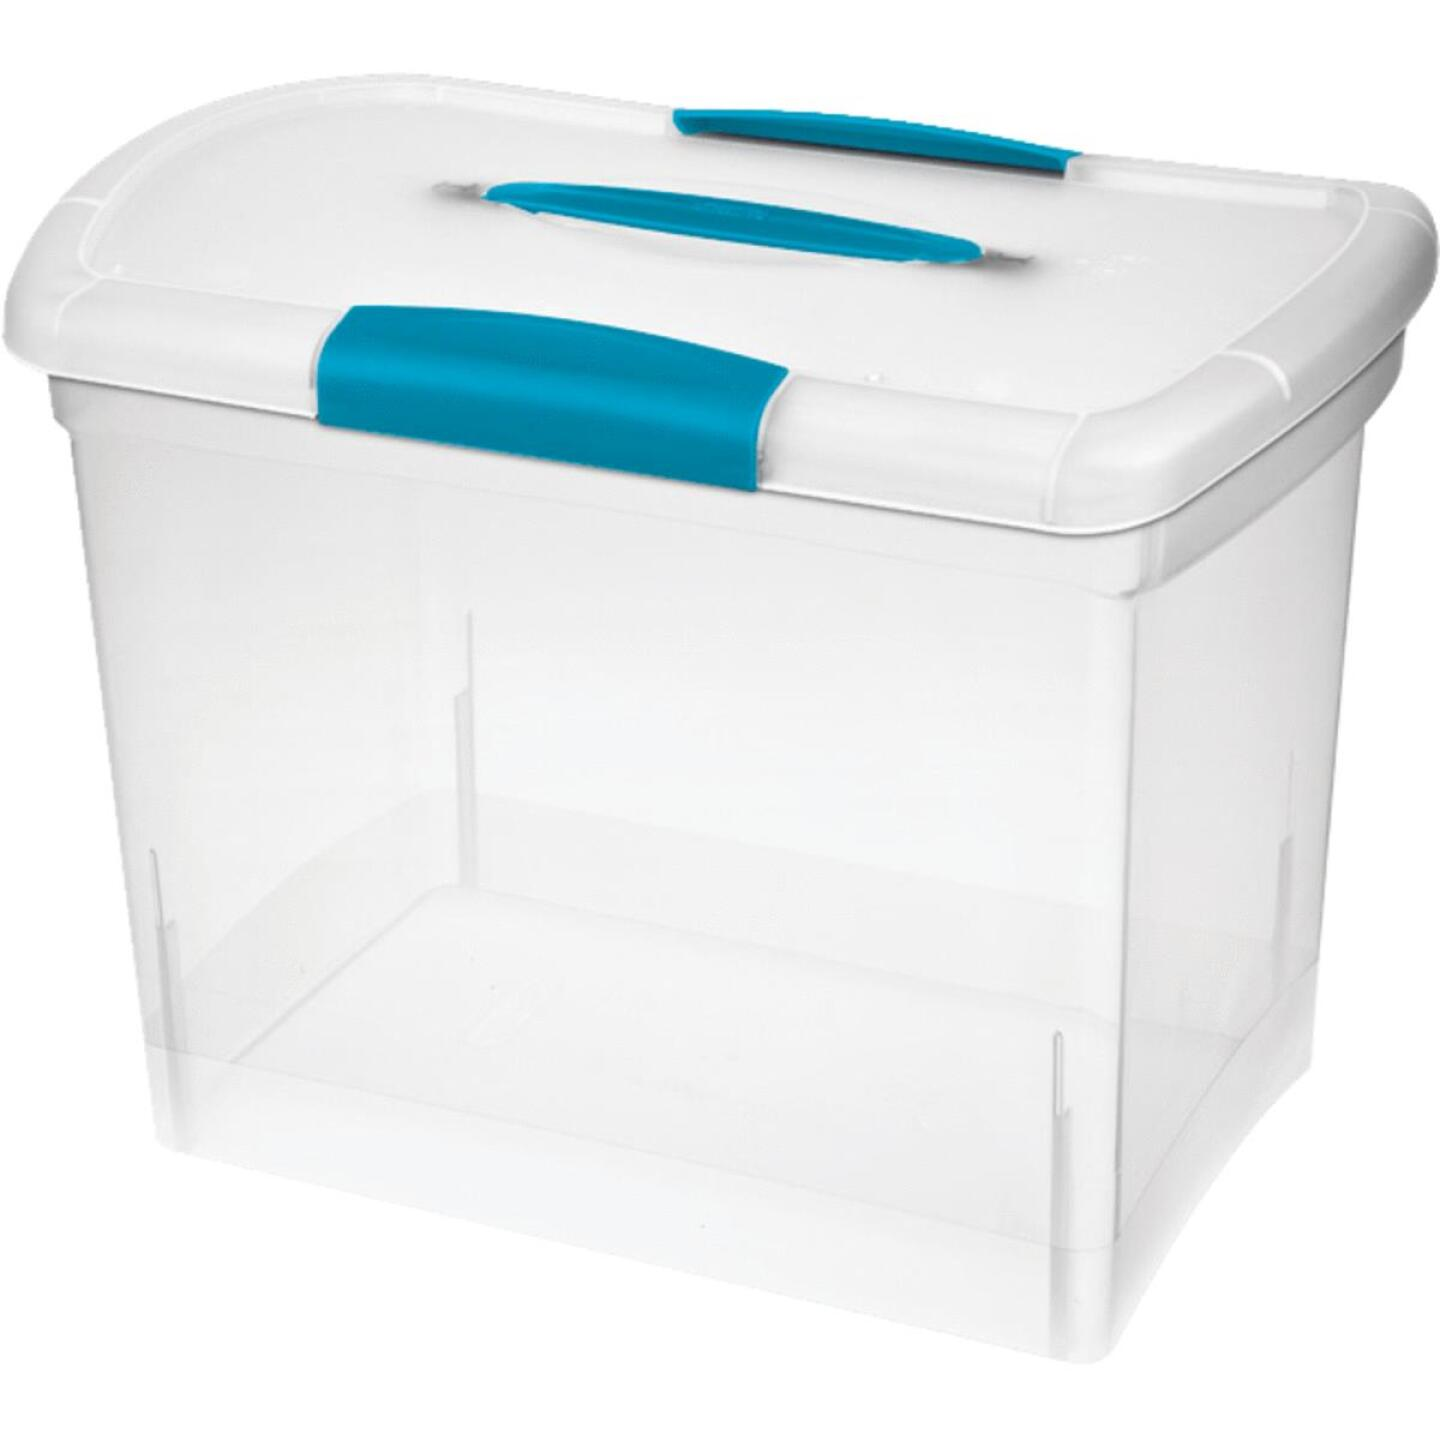 Sterilite ShowOffs 9-1/2 In. x 12-1/4 In. x 14-1/4 In. Clear Storage Tote Image 1